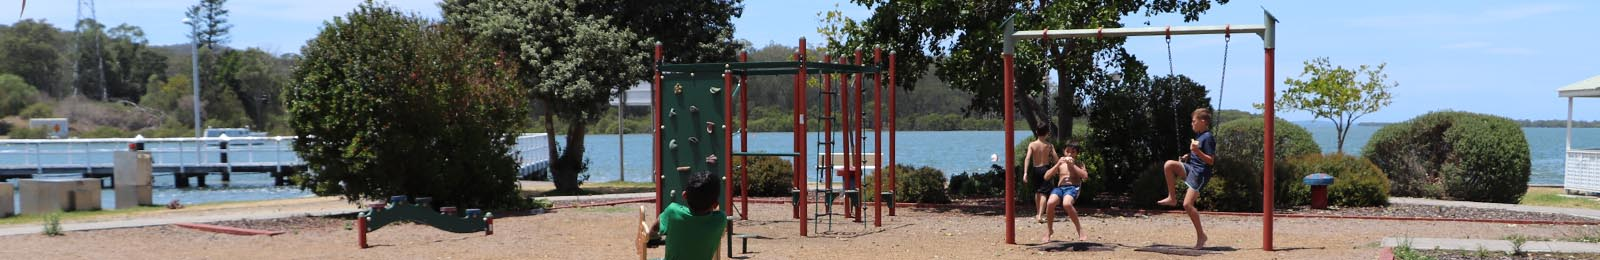 Image of a playground in Port Stephens